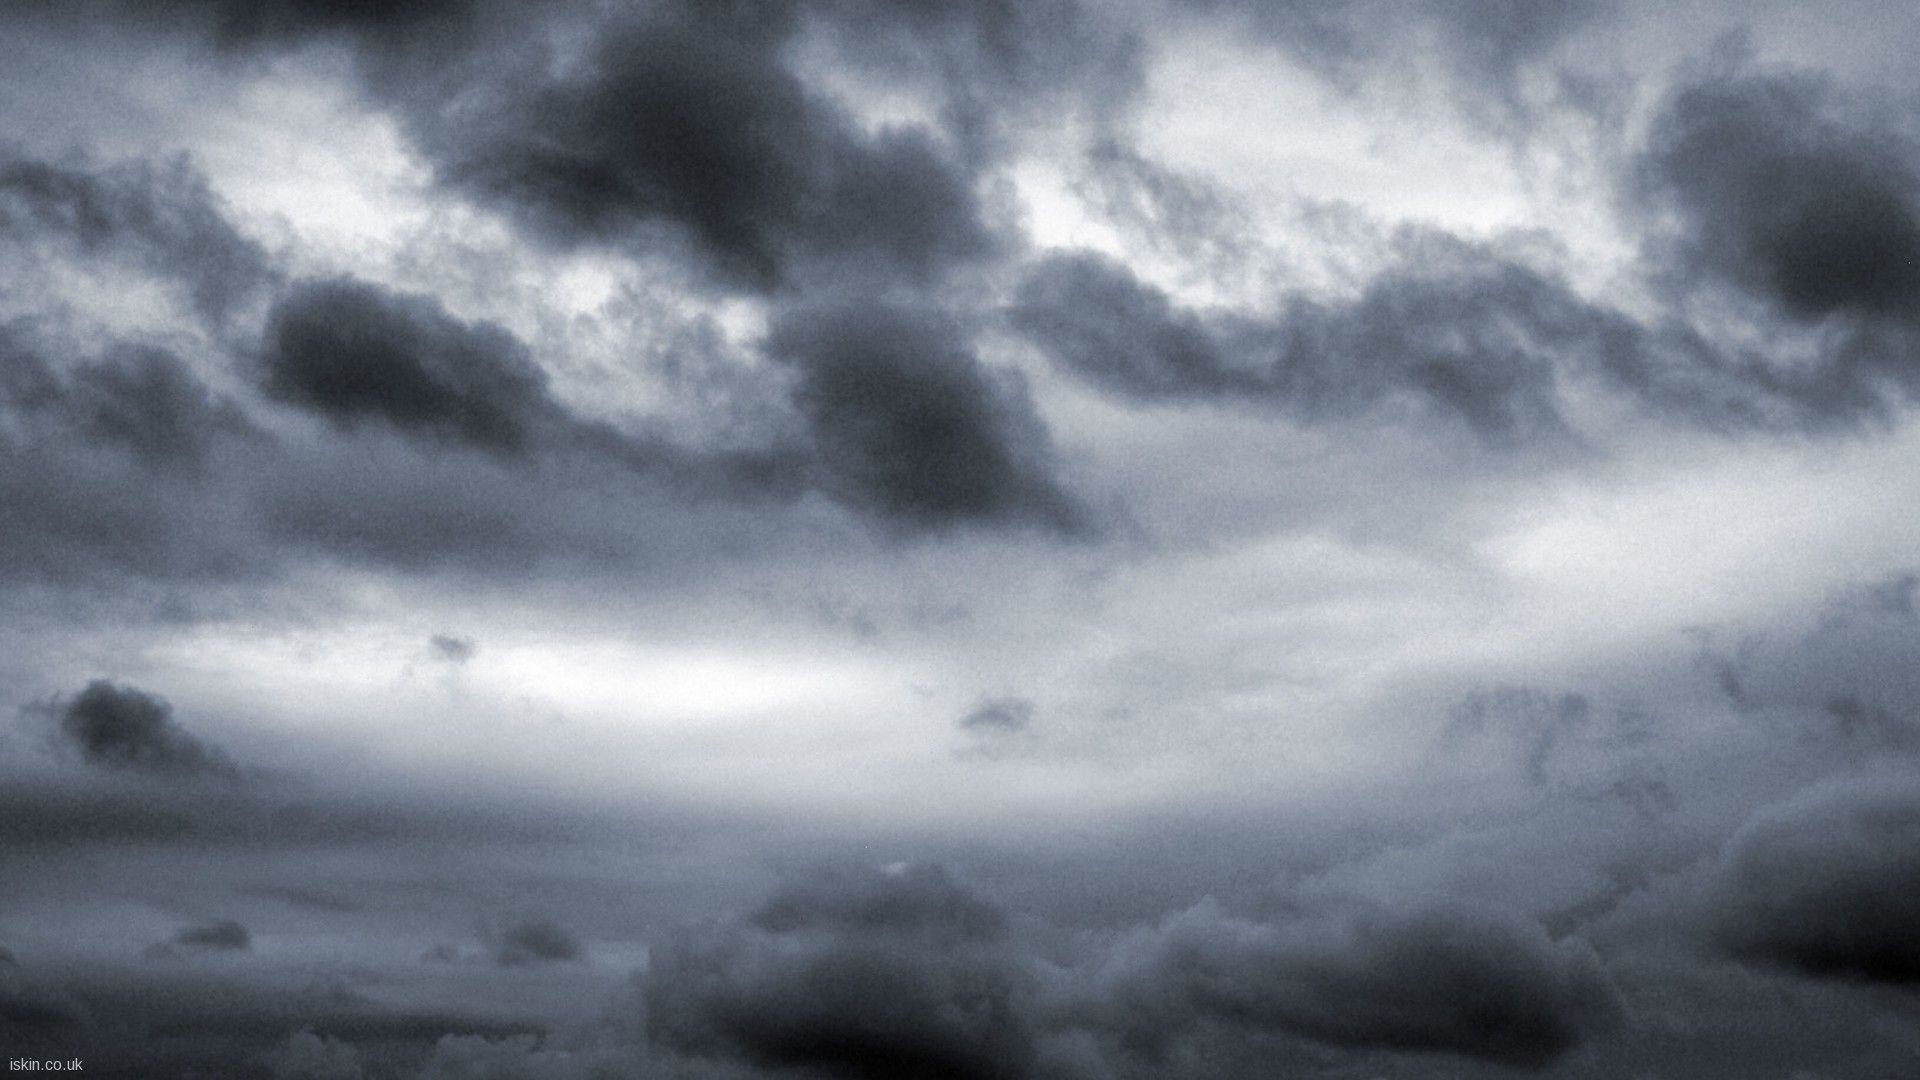 Stormy Sky Wallpaper 42966 High Resolution | download all free jpeg